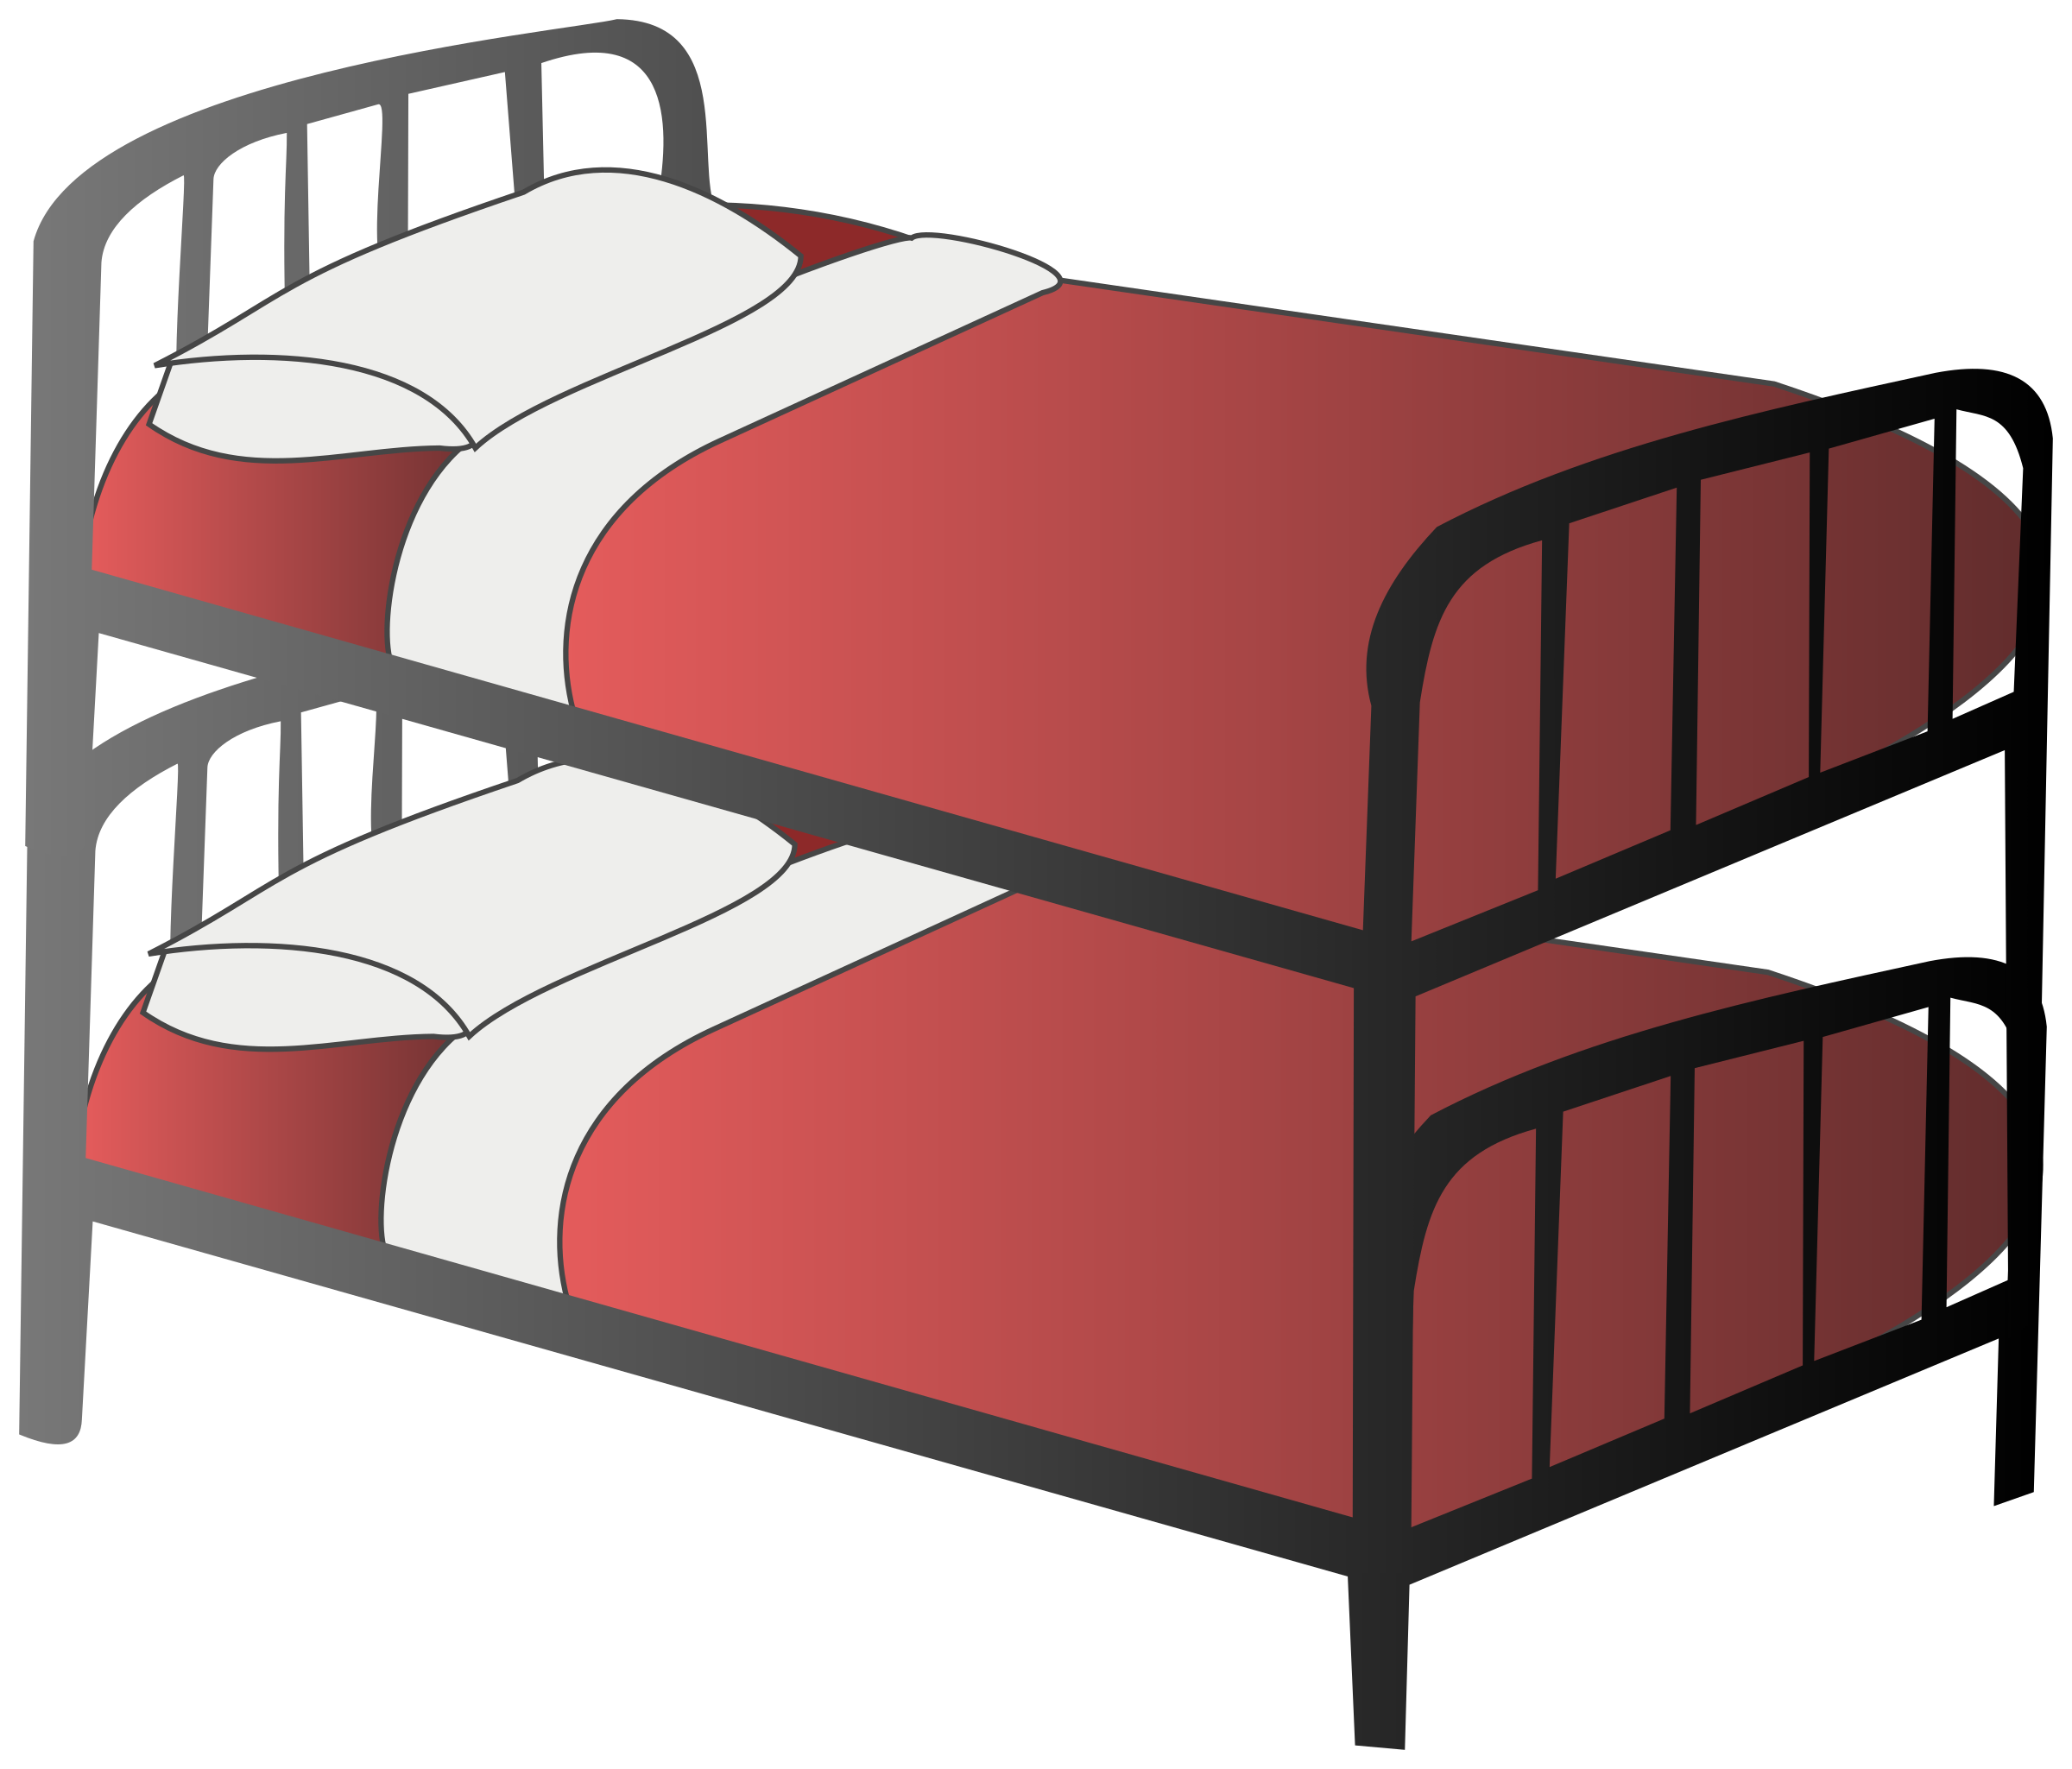 Beds Clipart.